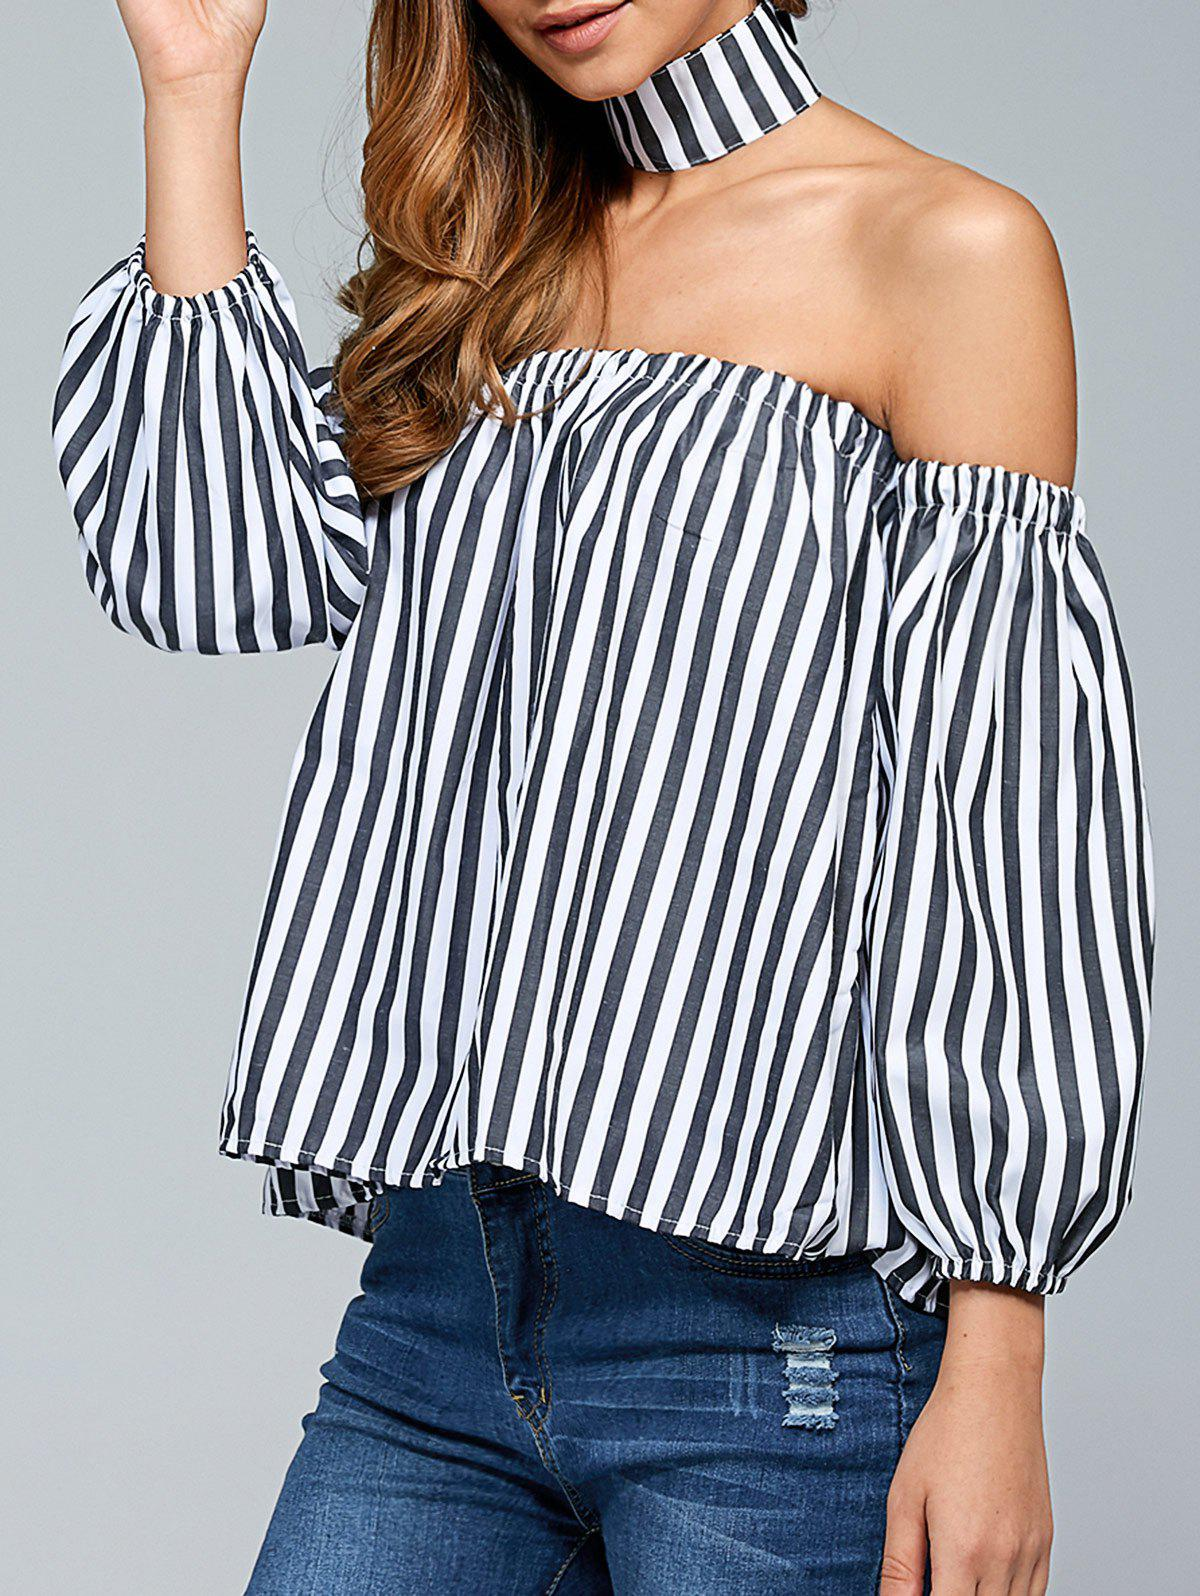 Off The Shoulder Top With Choker - WHITE/BLACK XL